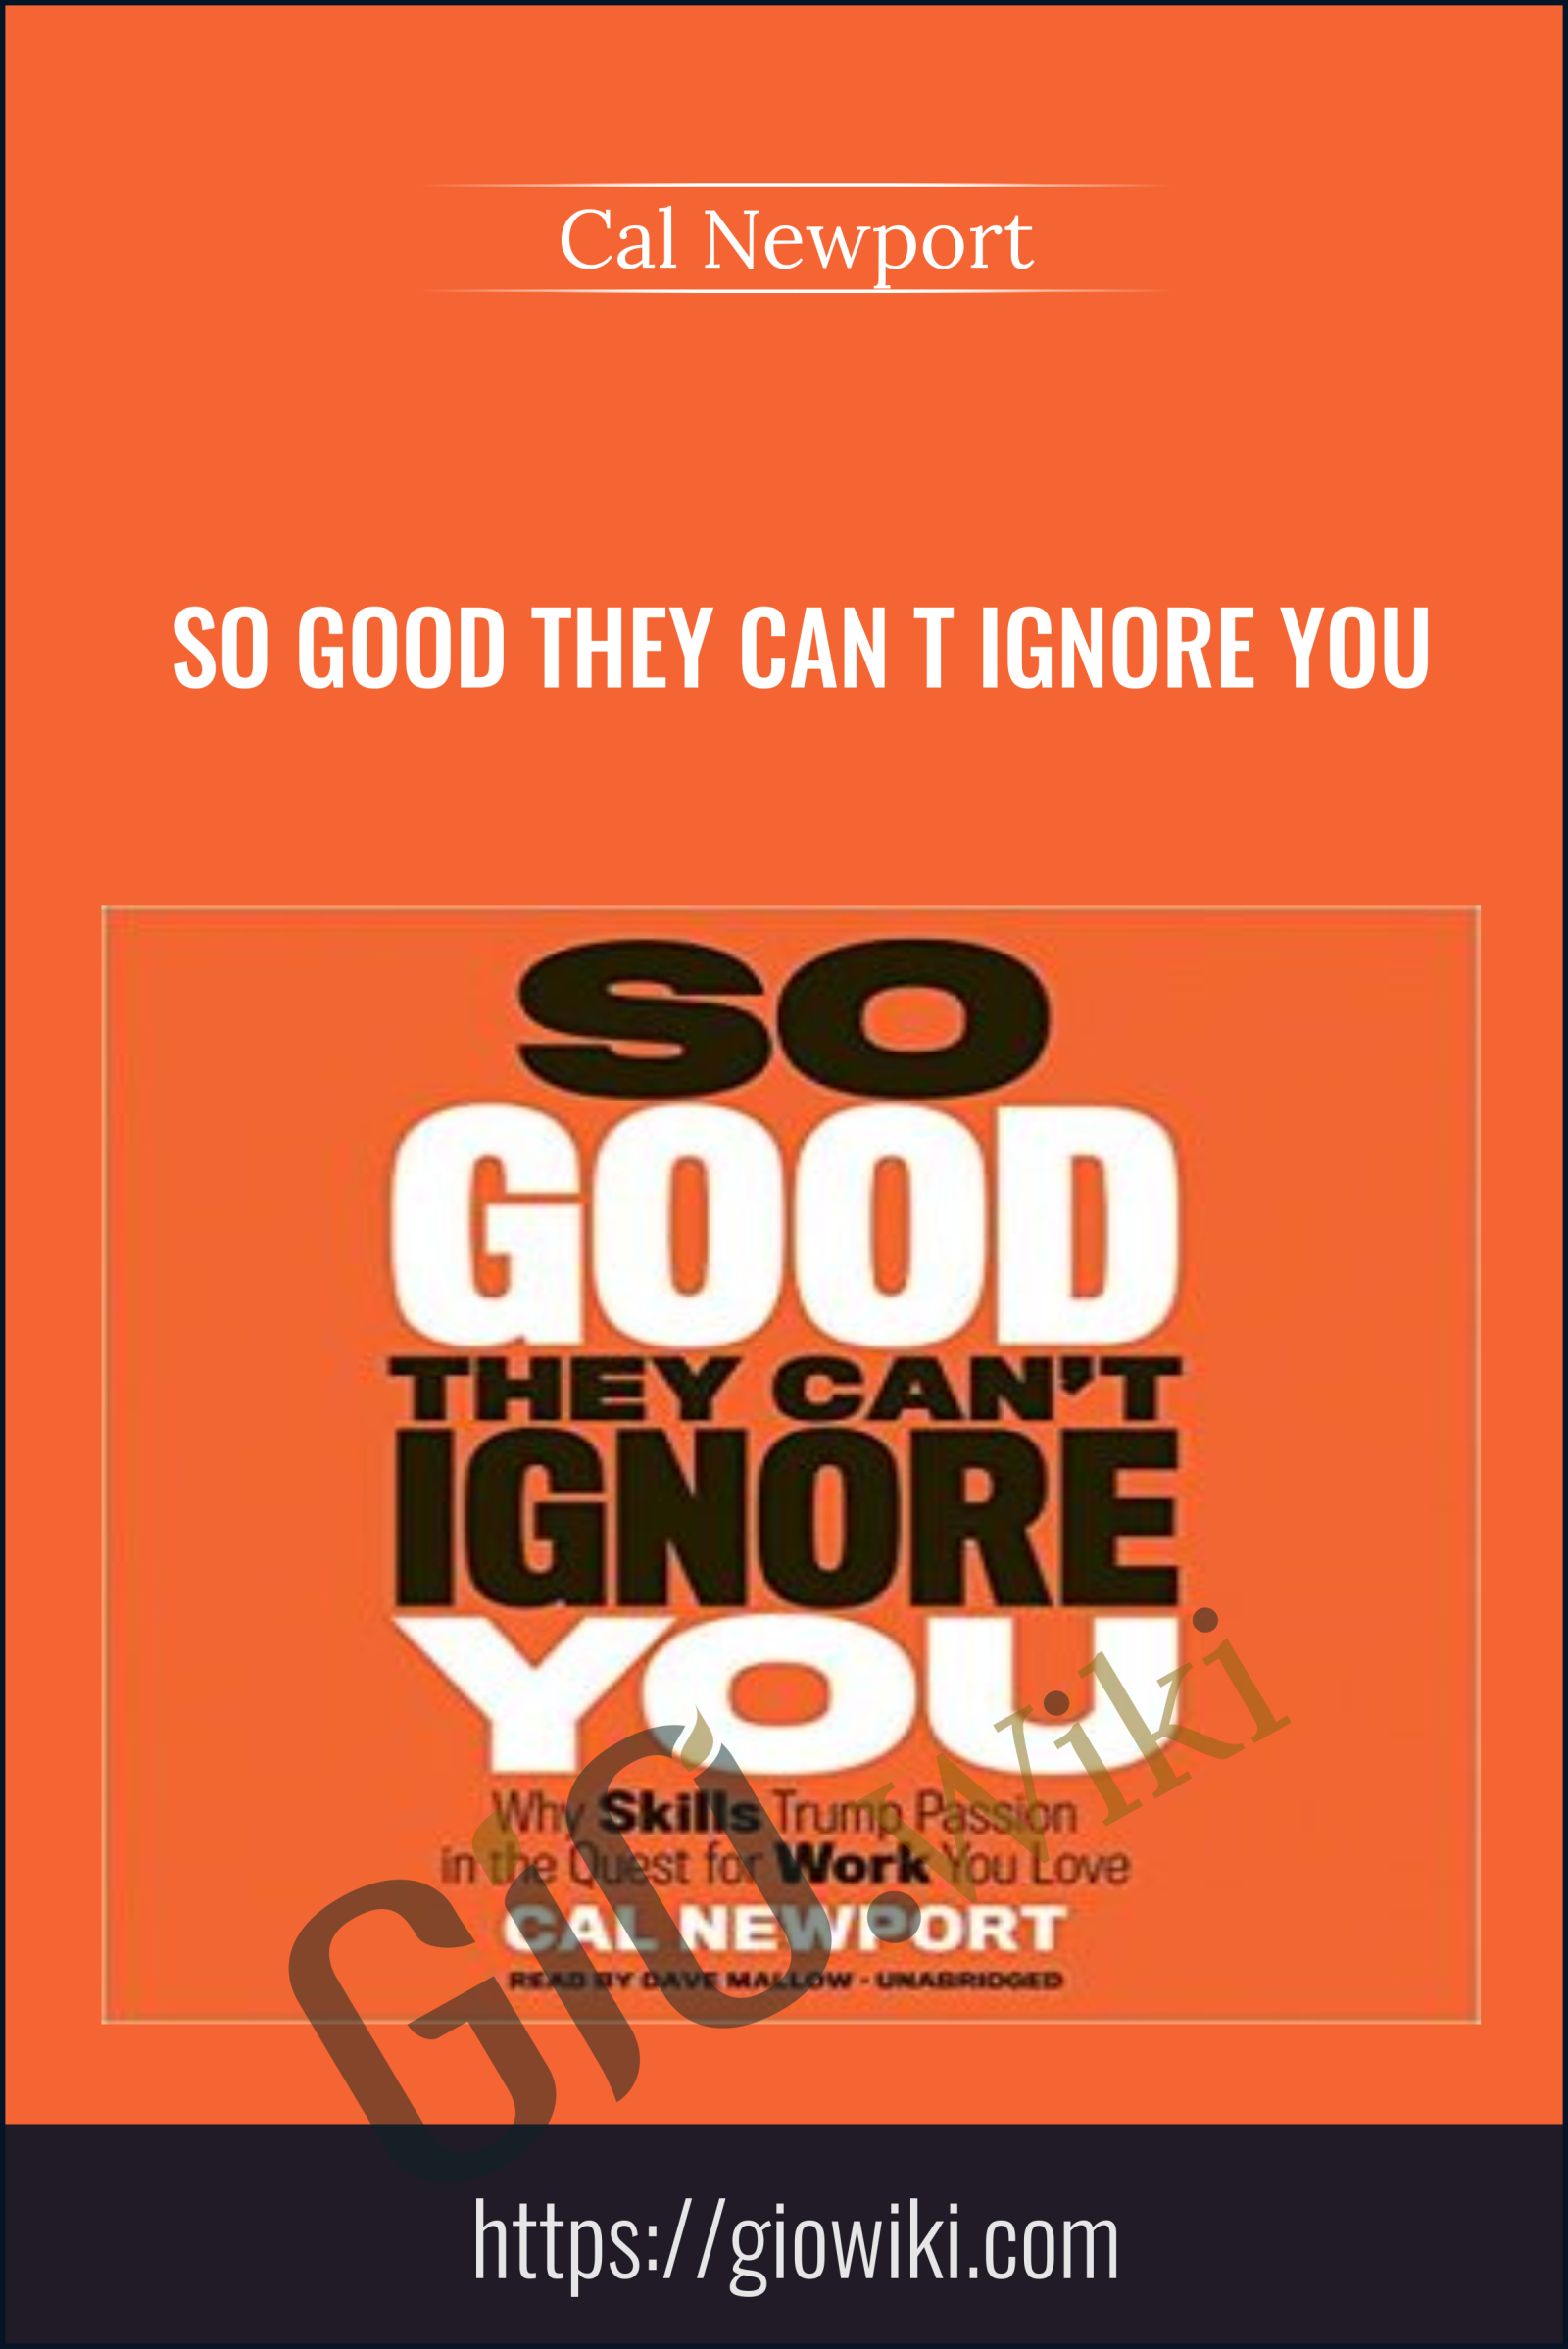 So Good They Can t Ignore You - Cal Newport